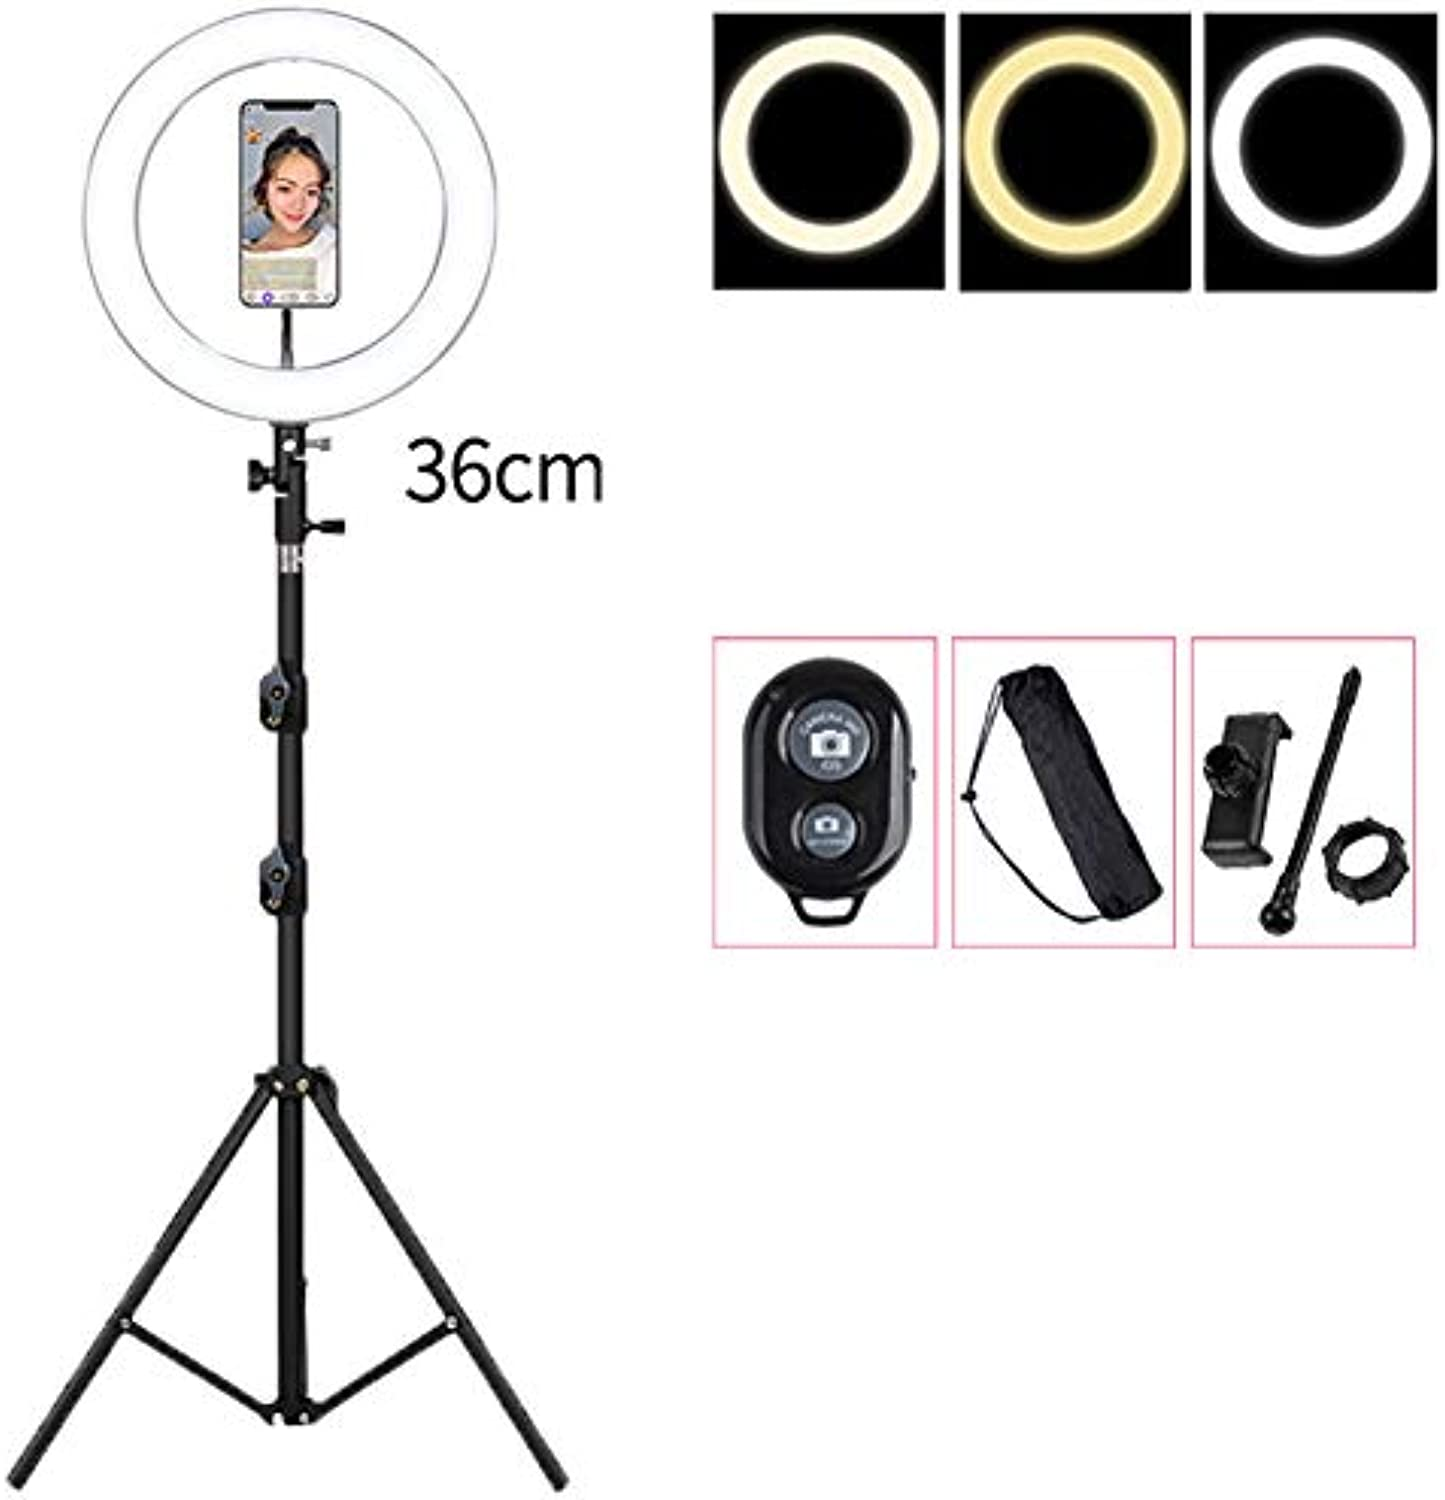 36cm LED Ringlicht mit 55cm Stand Dimmbarem USB Video Licht Für Live Streaming Kamera Vlogging